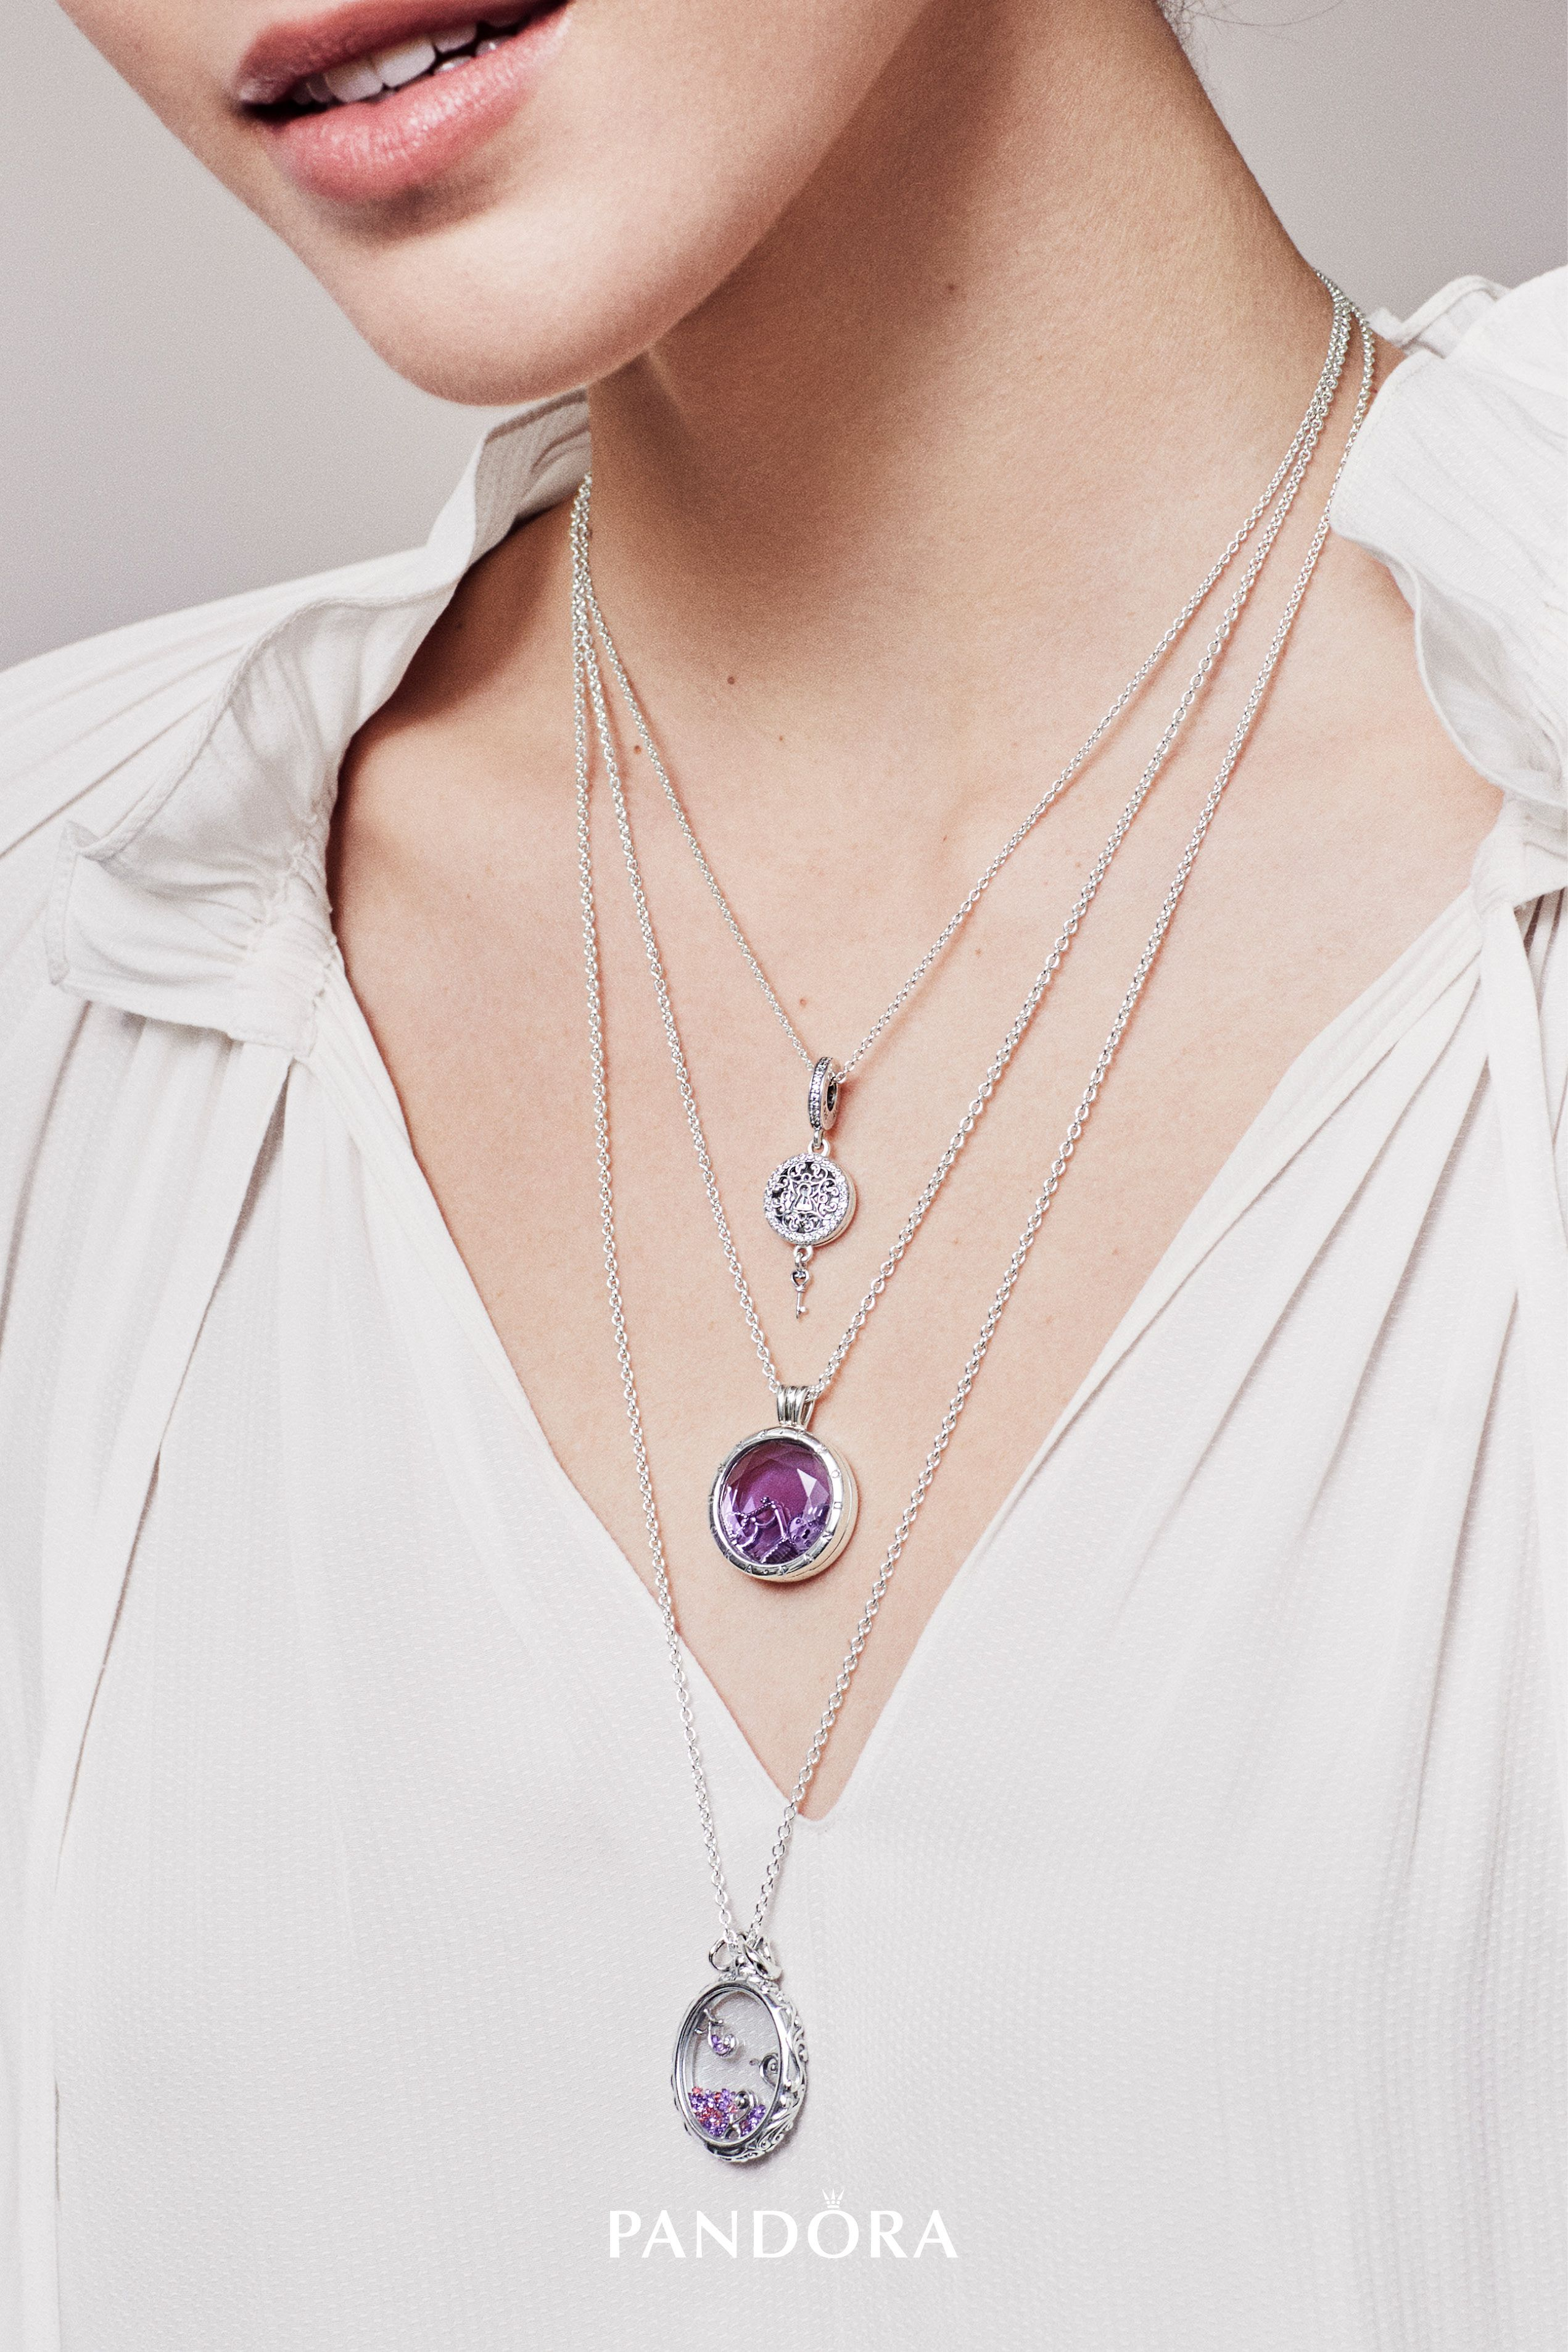 Wear Your Memories On Your Fingers With The New Floating Locket Ring Regarding Latest Pandora Logo Pavé Heart Locket Element Necklaces (View 17 of 25)